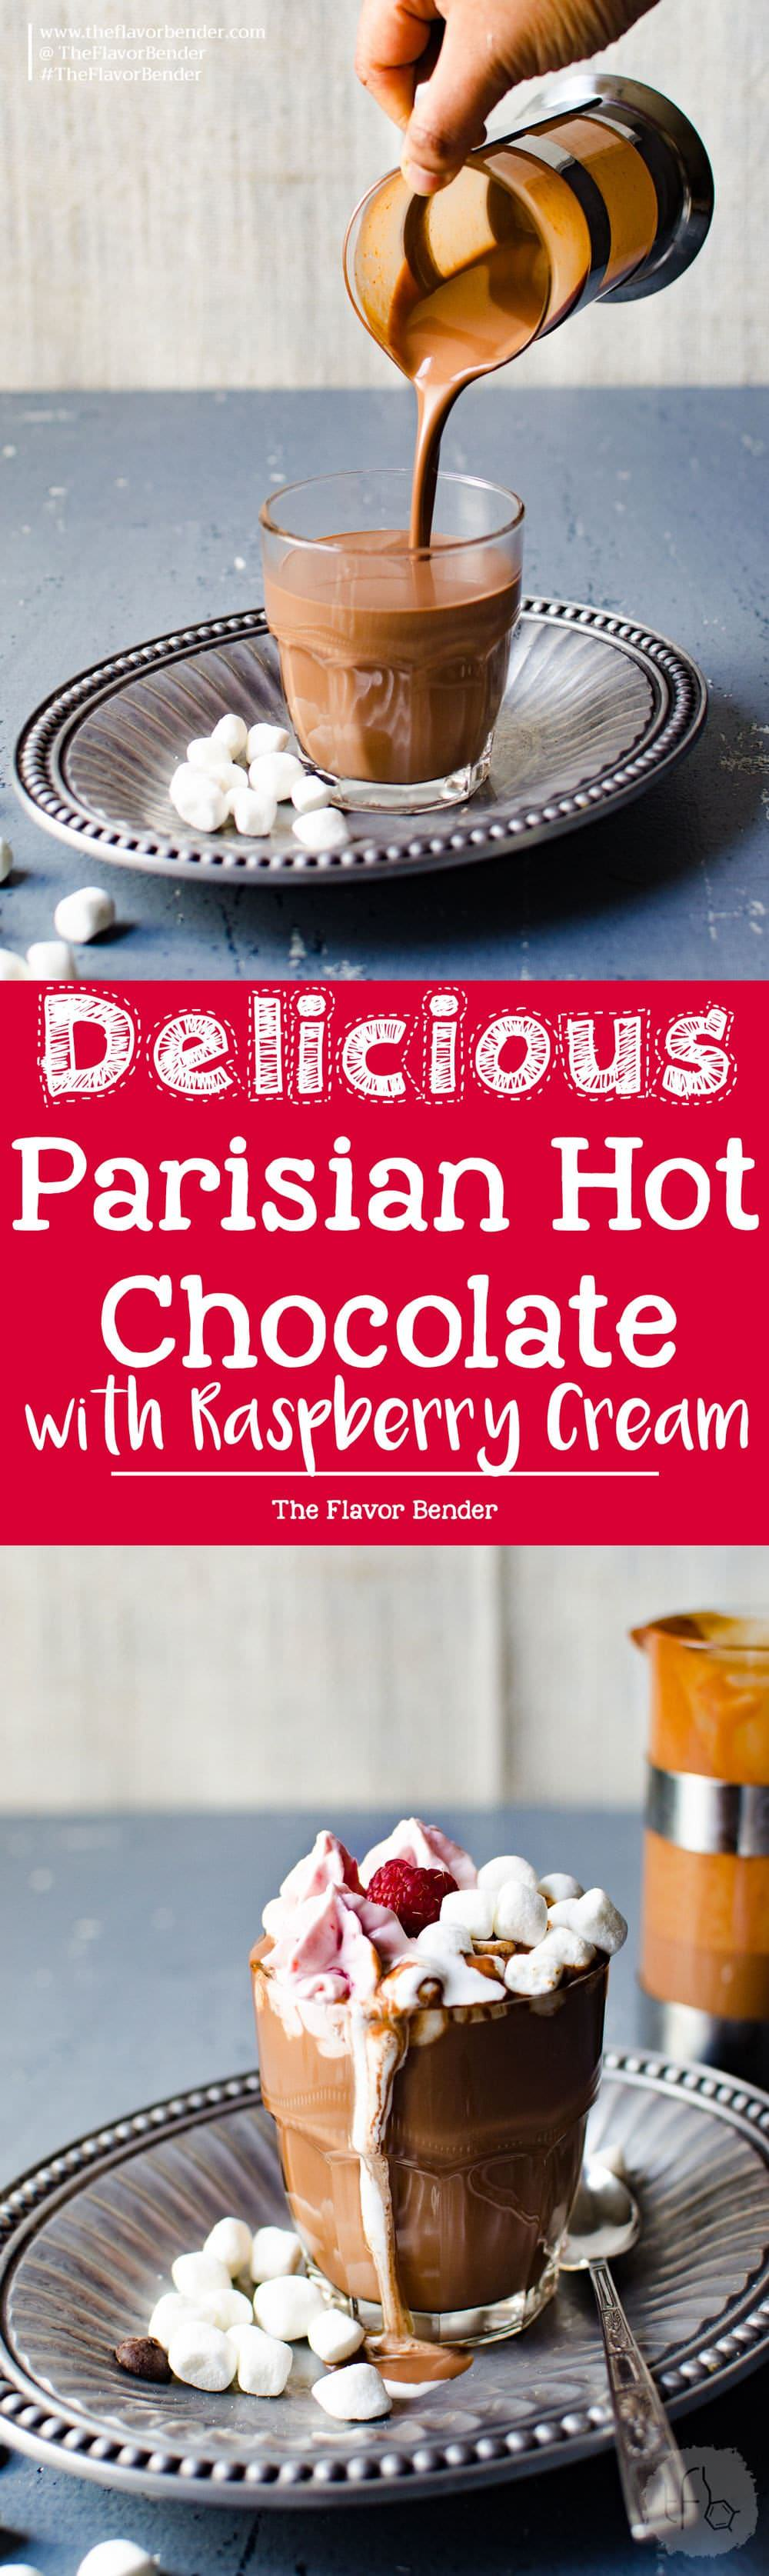 Parisian Hot Chocolate with Raspberry Whipped Cream - Only 3 ingredients to make this thick, luscious deep flavored hot chocolate, and topped with raspberry whipped cream. Enjoy hot chocolate, the way the French do!  Hot Chocolate | European Hot Chocolate | Chocolate | Raspberries | Valentines Day | Le Chocalat Chaud |